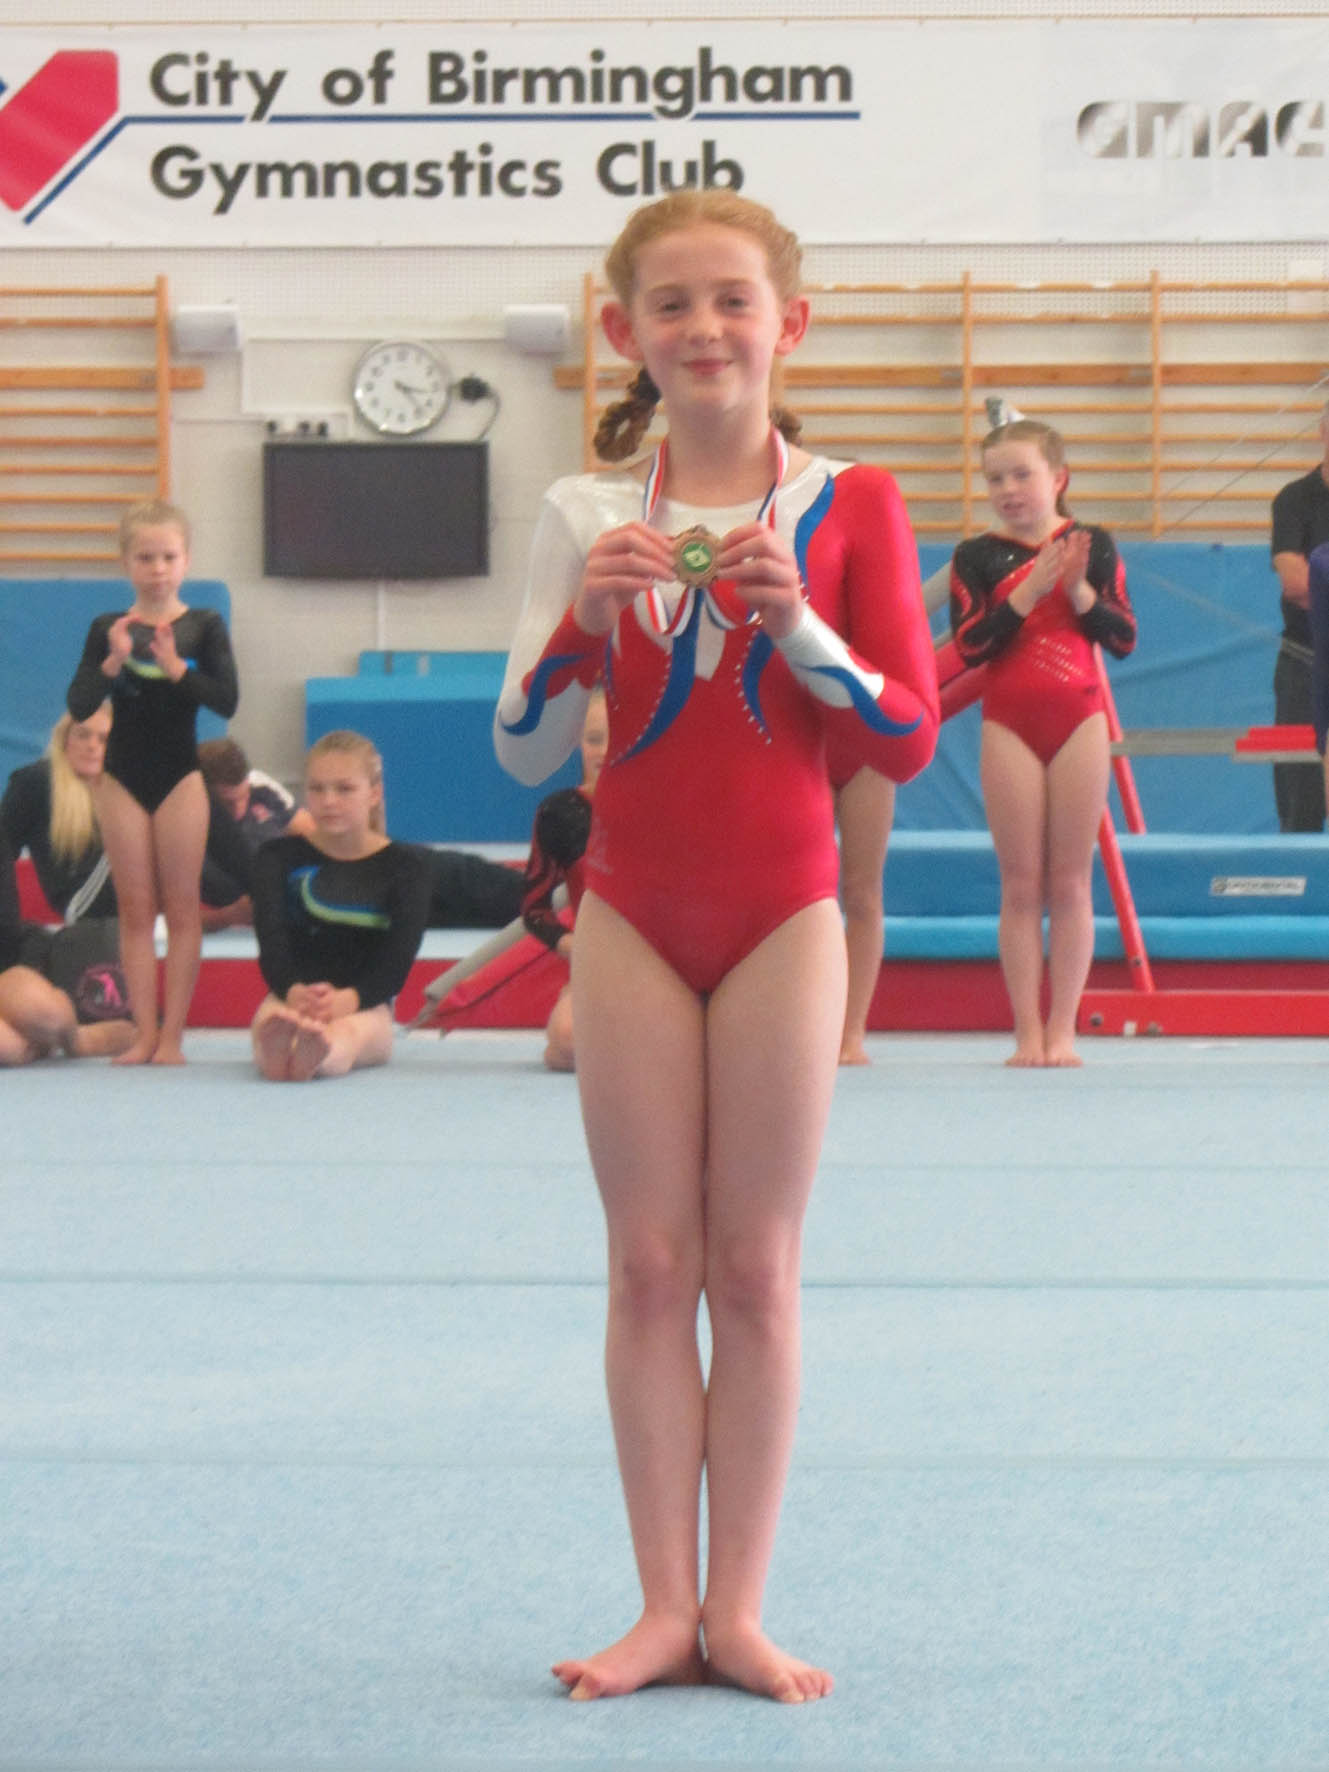 Jessica - West Mids Level 4 Out of Age (10/11yrs) Bronze Medalist 2013